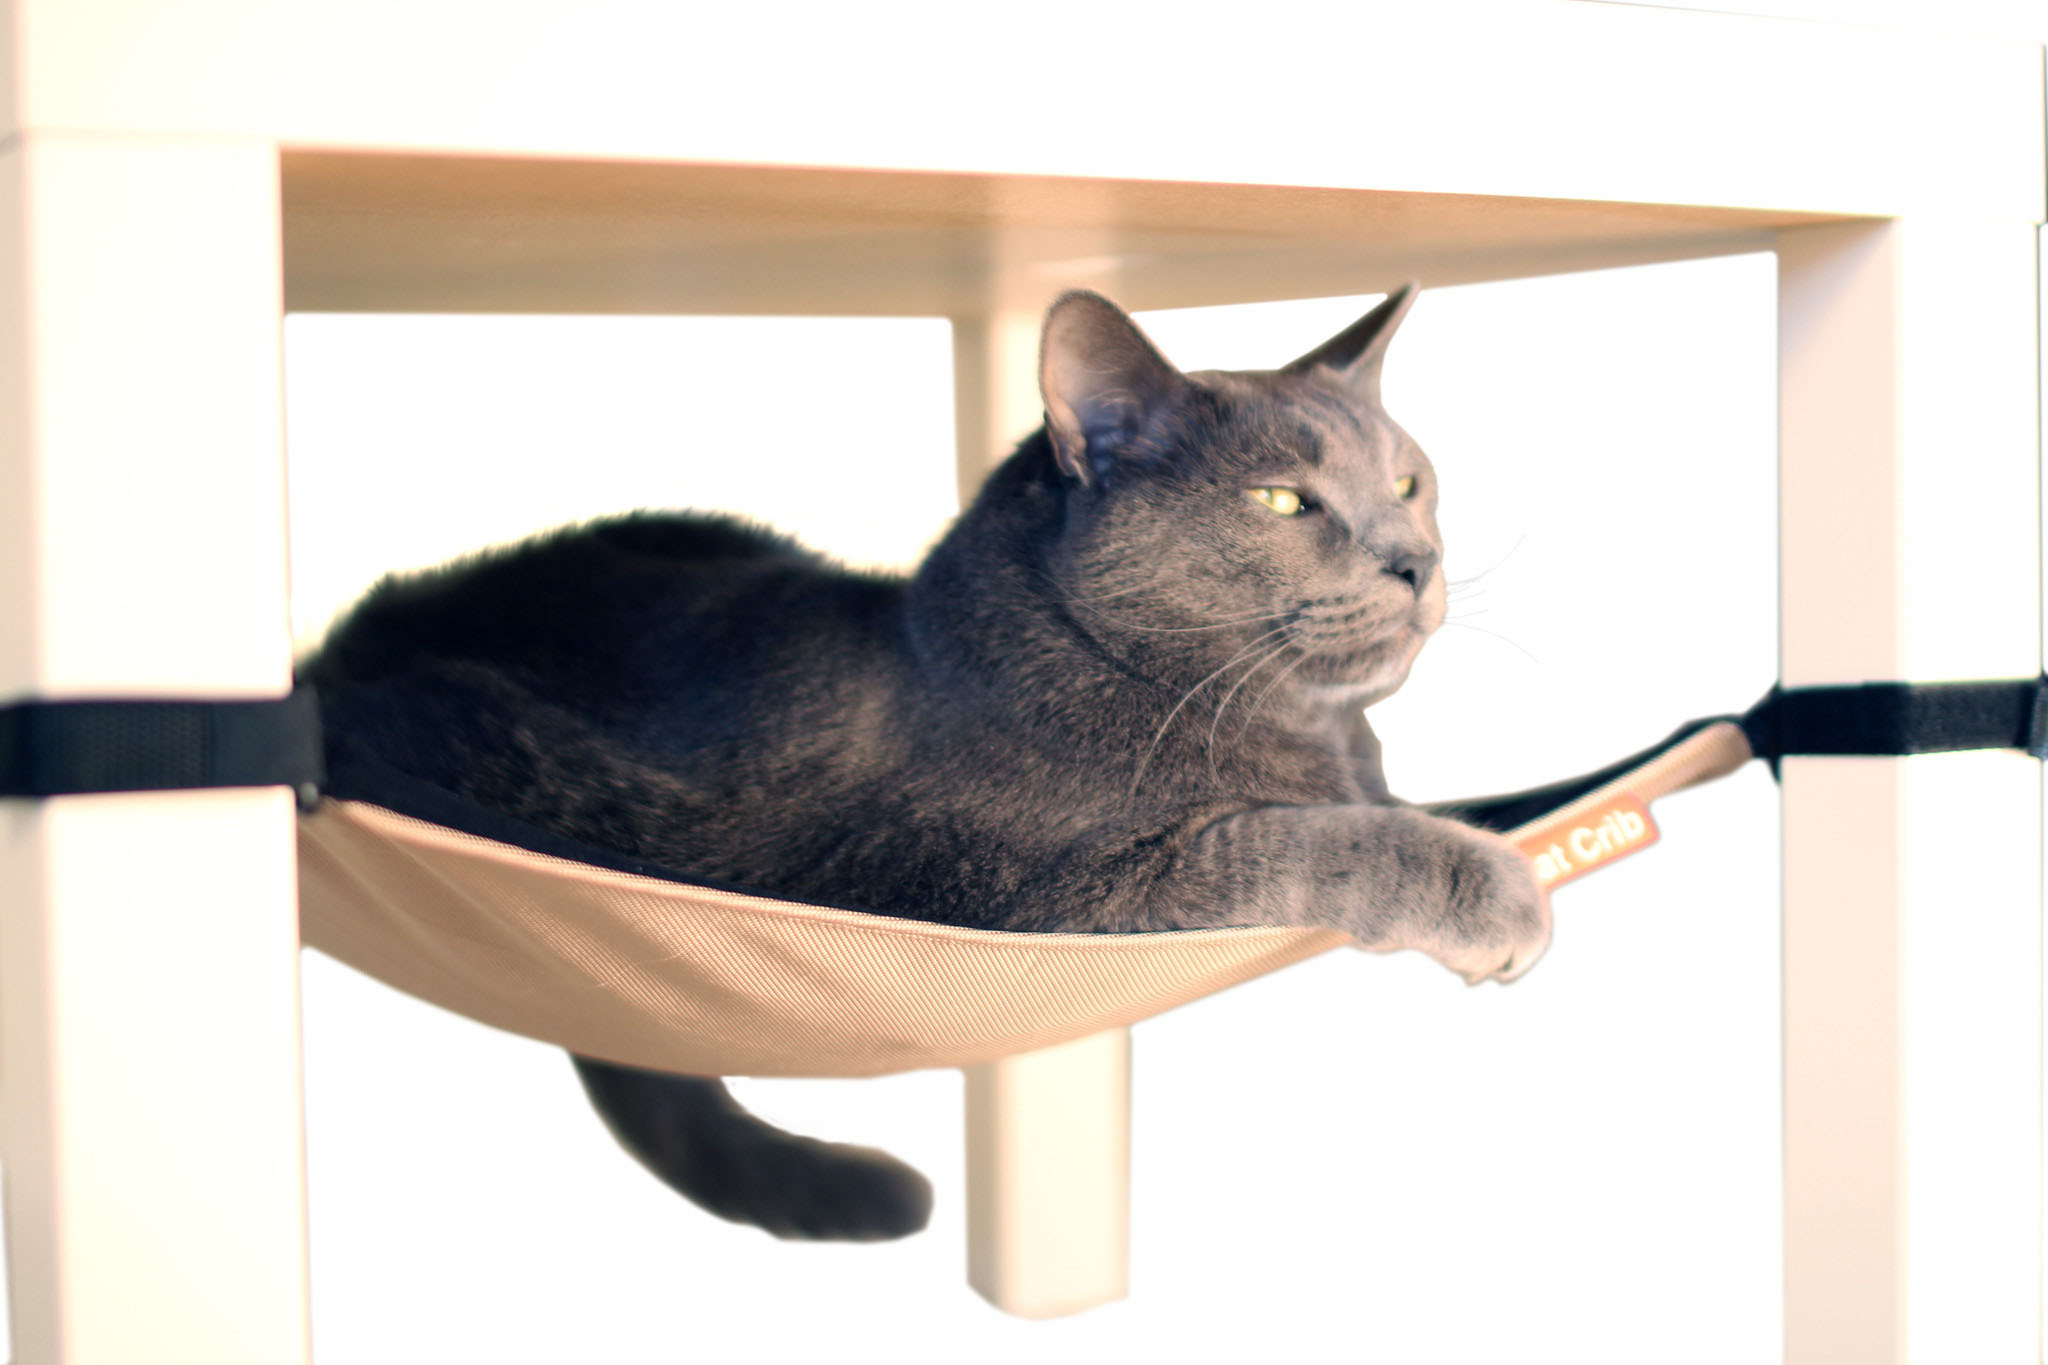 cat hammock under chair swing in living room grab an awesome toy or treat for your today toys